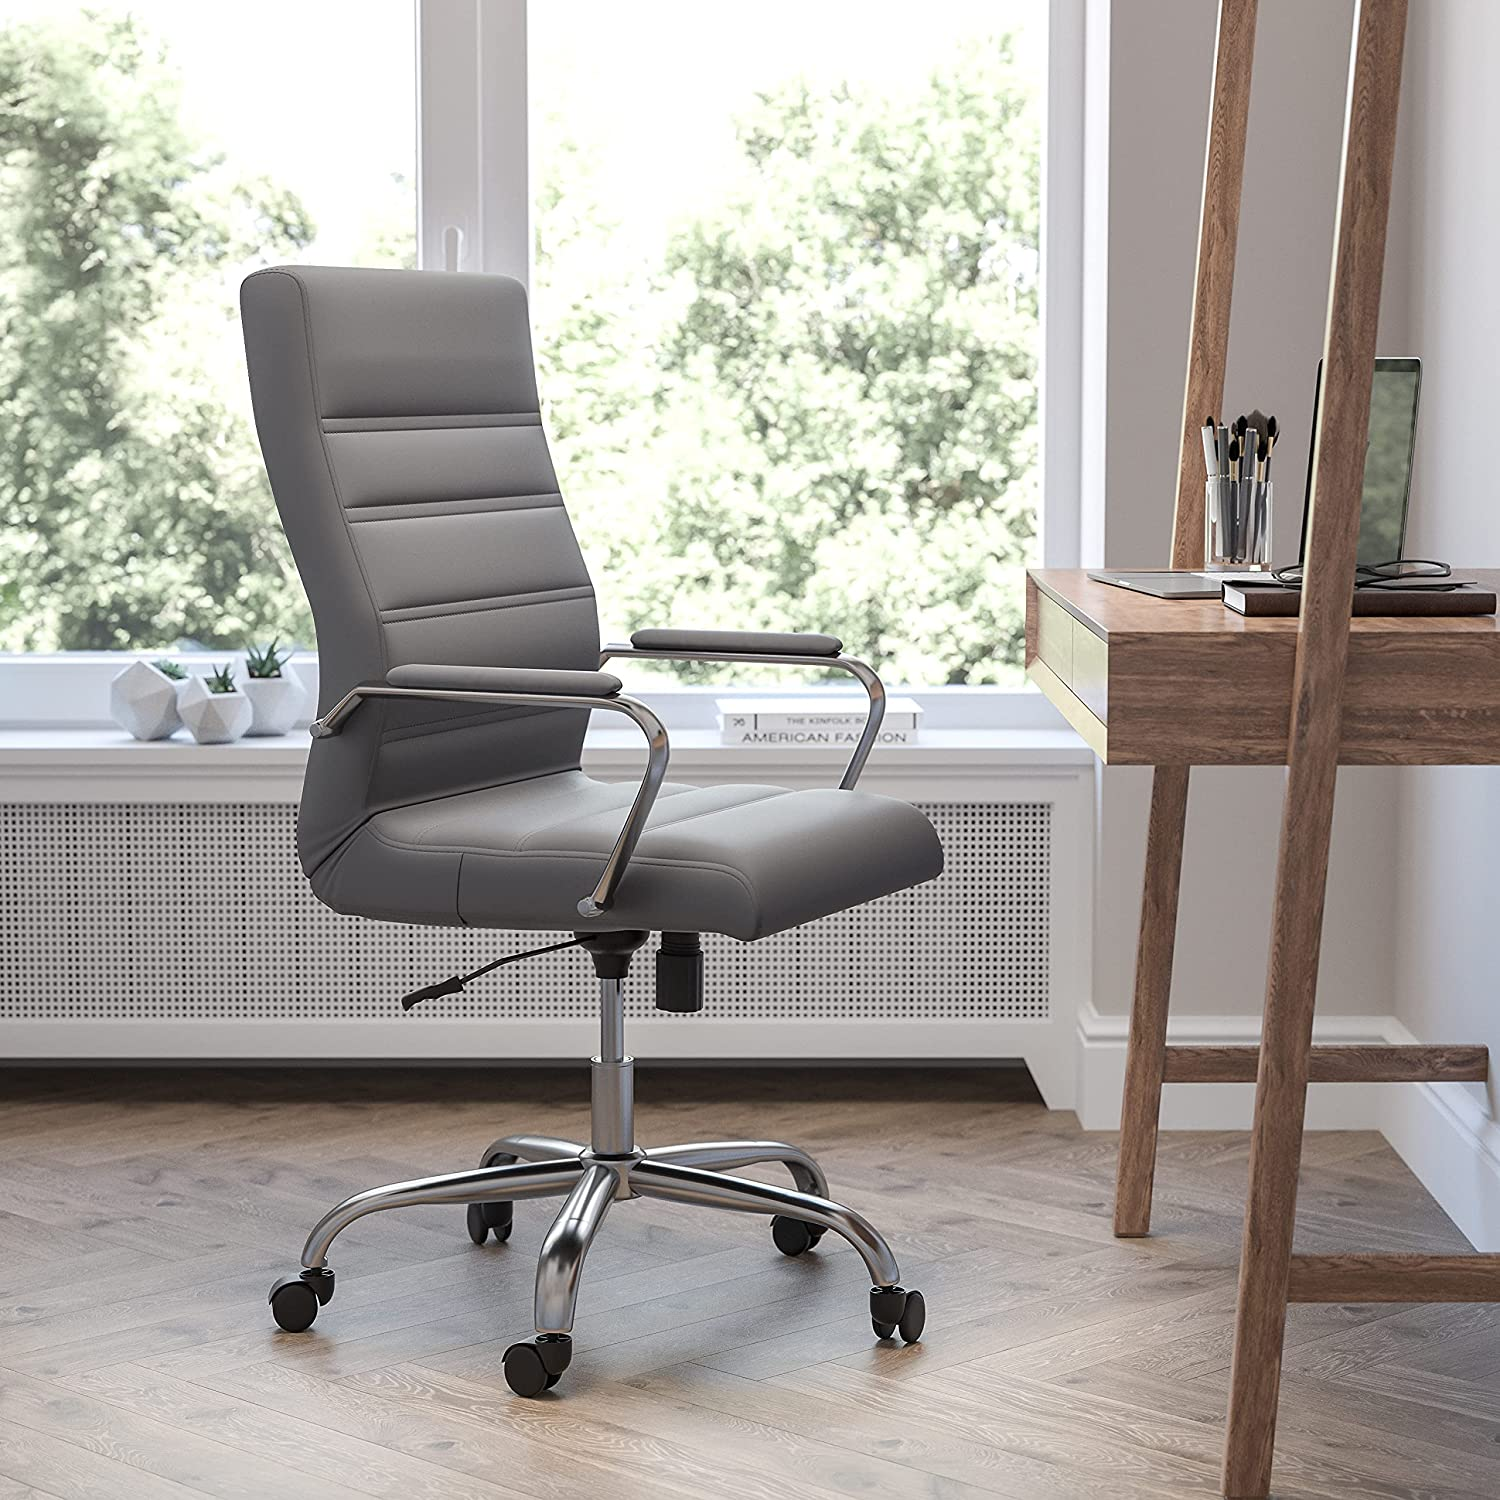 Flash Furniture High Back Desk Chair - Gray LeatherSoft Executive Swivel Office Chair with Chrome Frame - Swivel Arm Chair